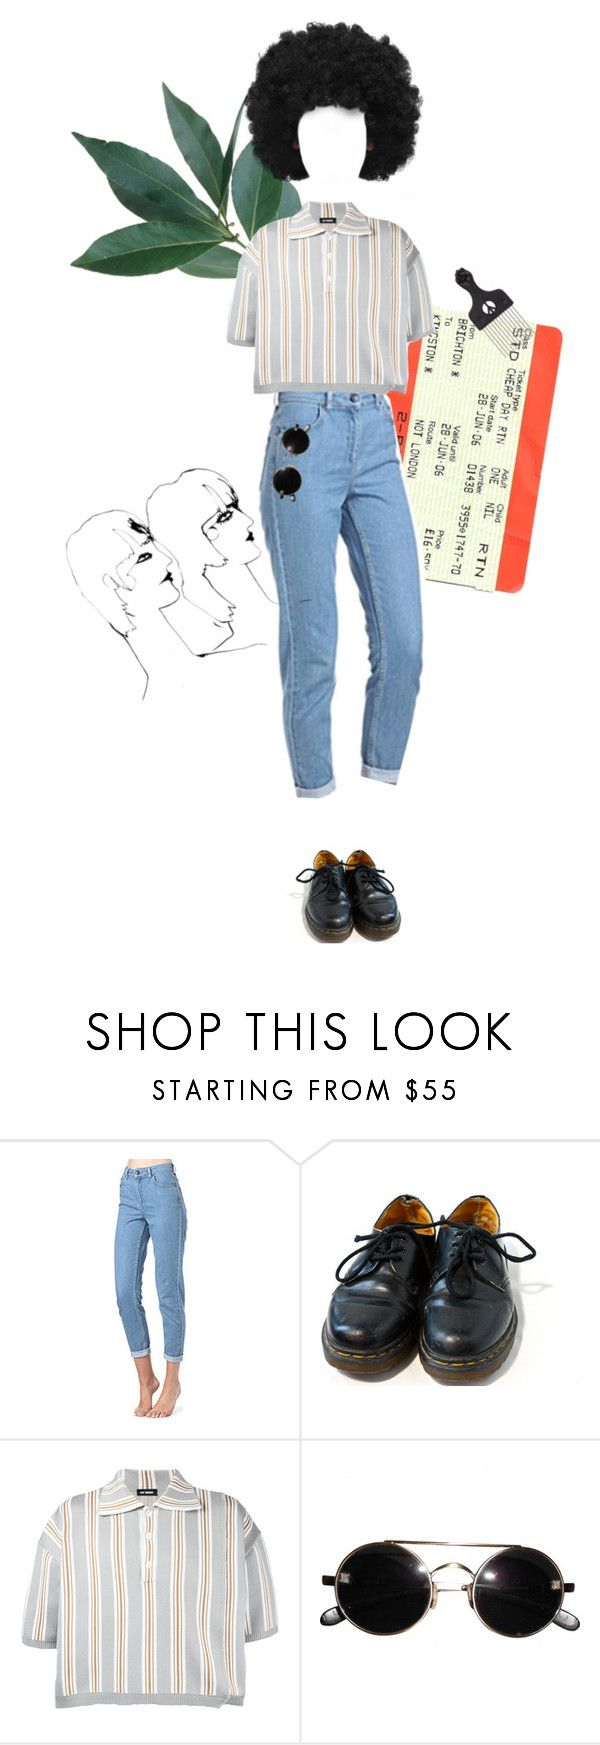 """no. 51"" by girlsaflame ❤ liked on Polyvore featuring Topshop, Dr. Martens and Raf Simons"